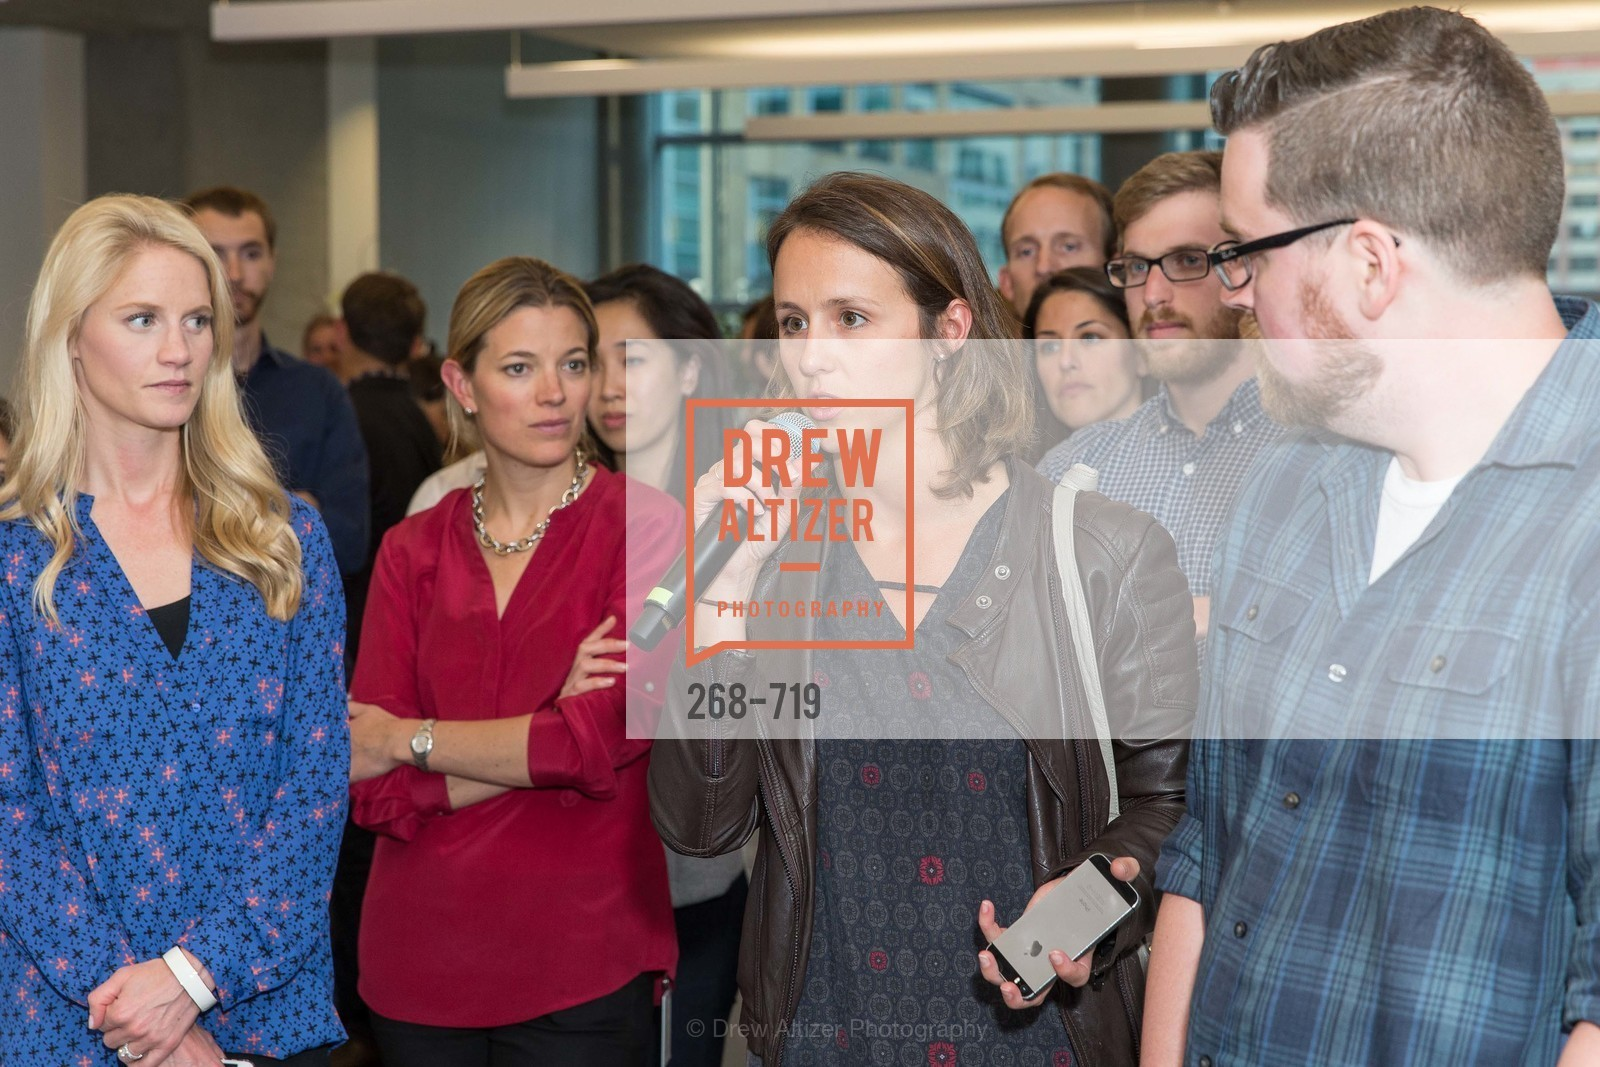 Extras, THE LINKEDIN Discussion Series featuring Jack and Suzy Welch with LinkedIn Executive Editor Dan Roth, May 11th, 2015, Photo,Drew Altizer, Drew Altizer Photography, full-service agency, private events, San Francisco photographer, photographer california